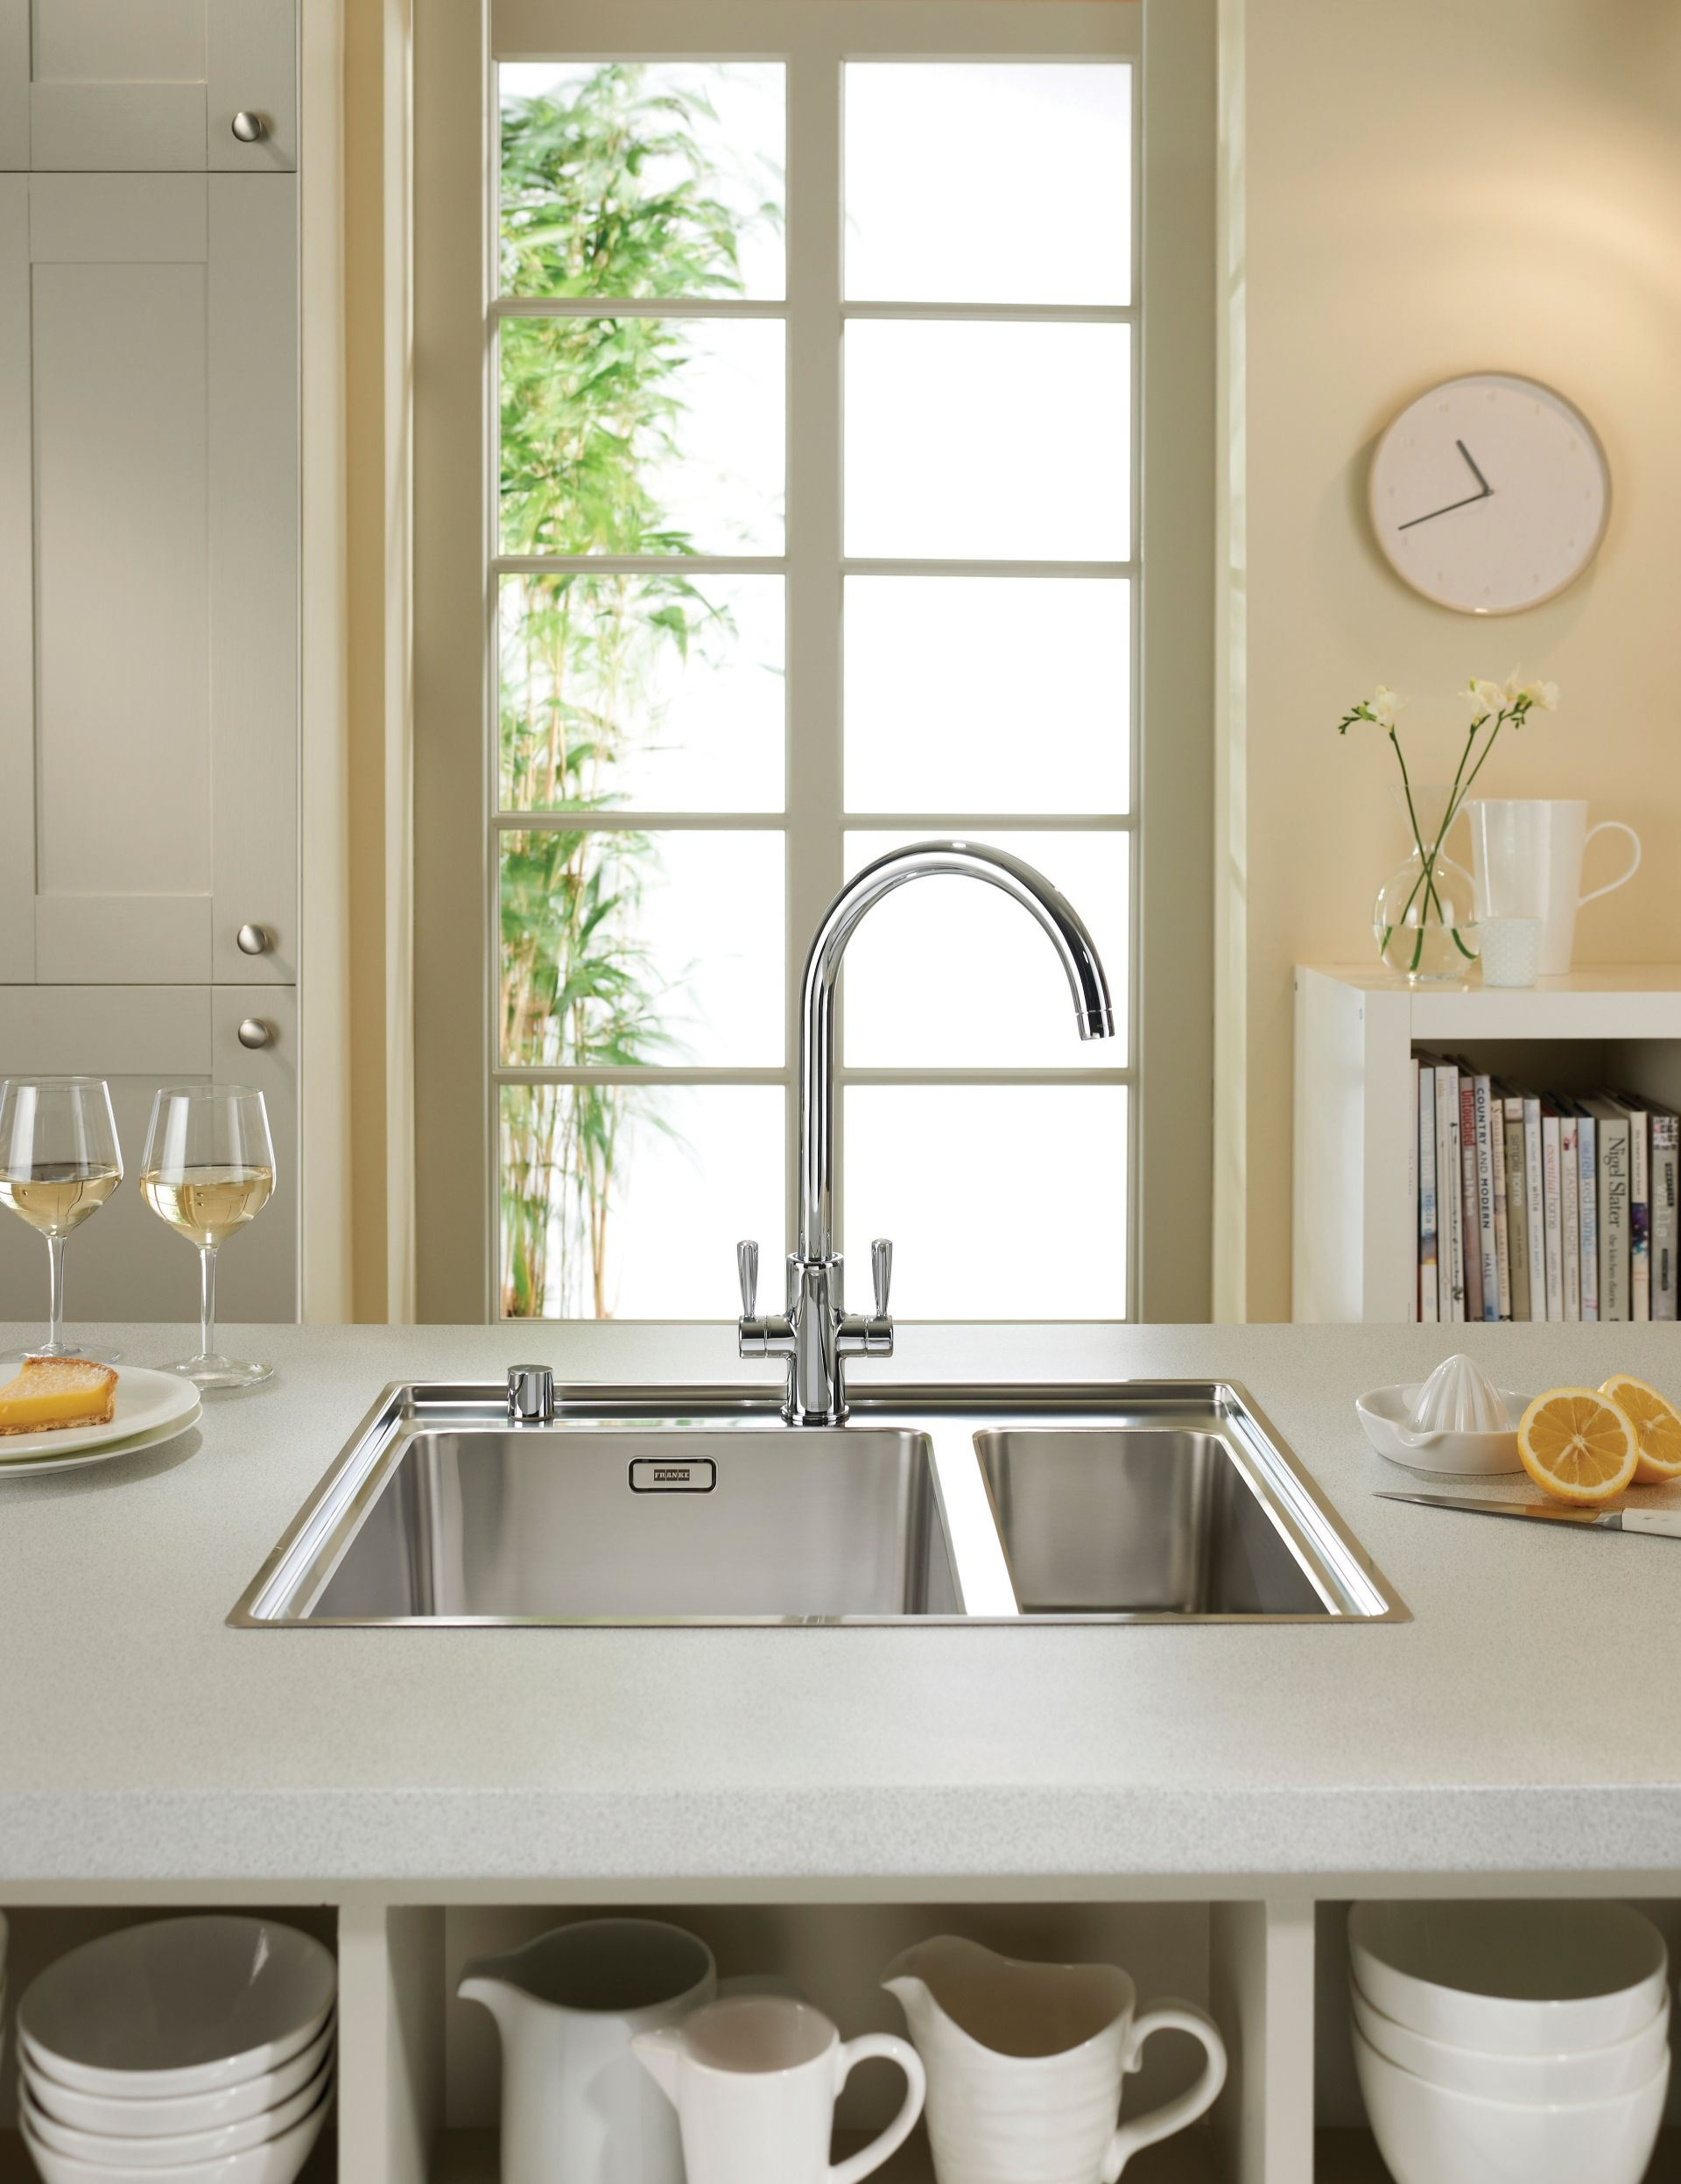 Silestone integrity sink with recess drainer - Blanco Etagon Silgranit Sink With Blanco Culina Mini S Tap Soap Dispenser Fitted Into Silestone Worktop Alno Kitchen Pinterest Sinks